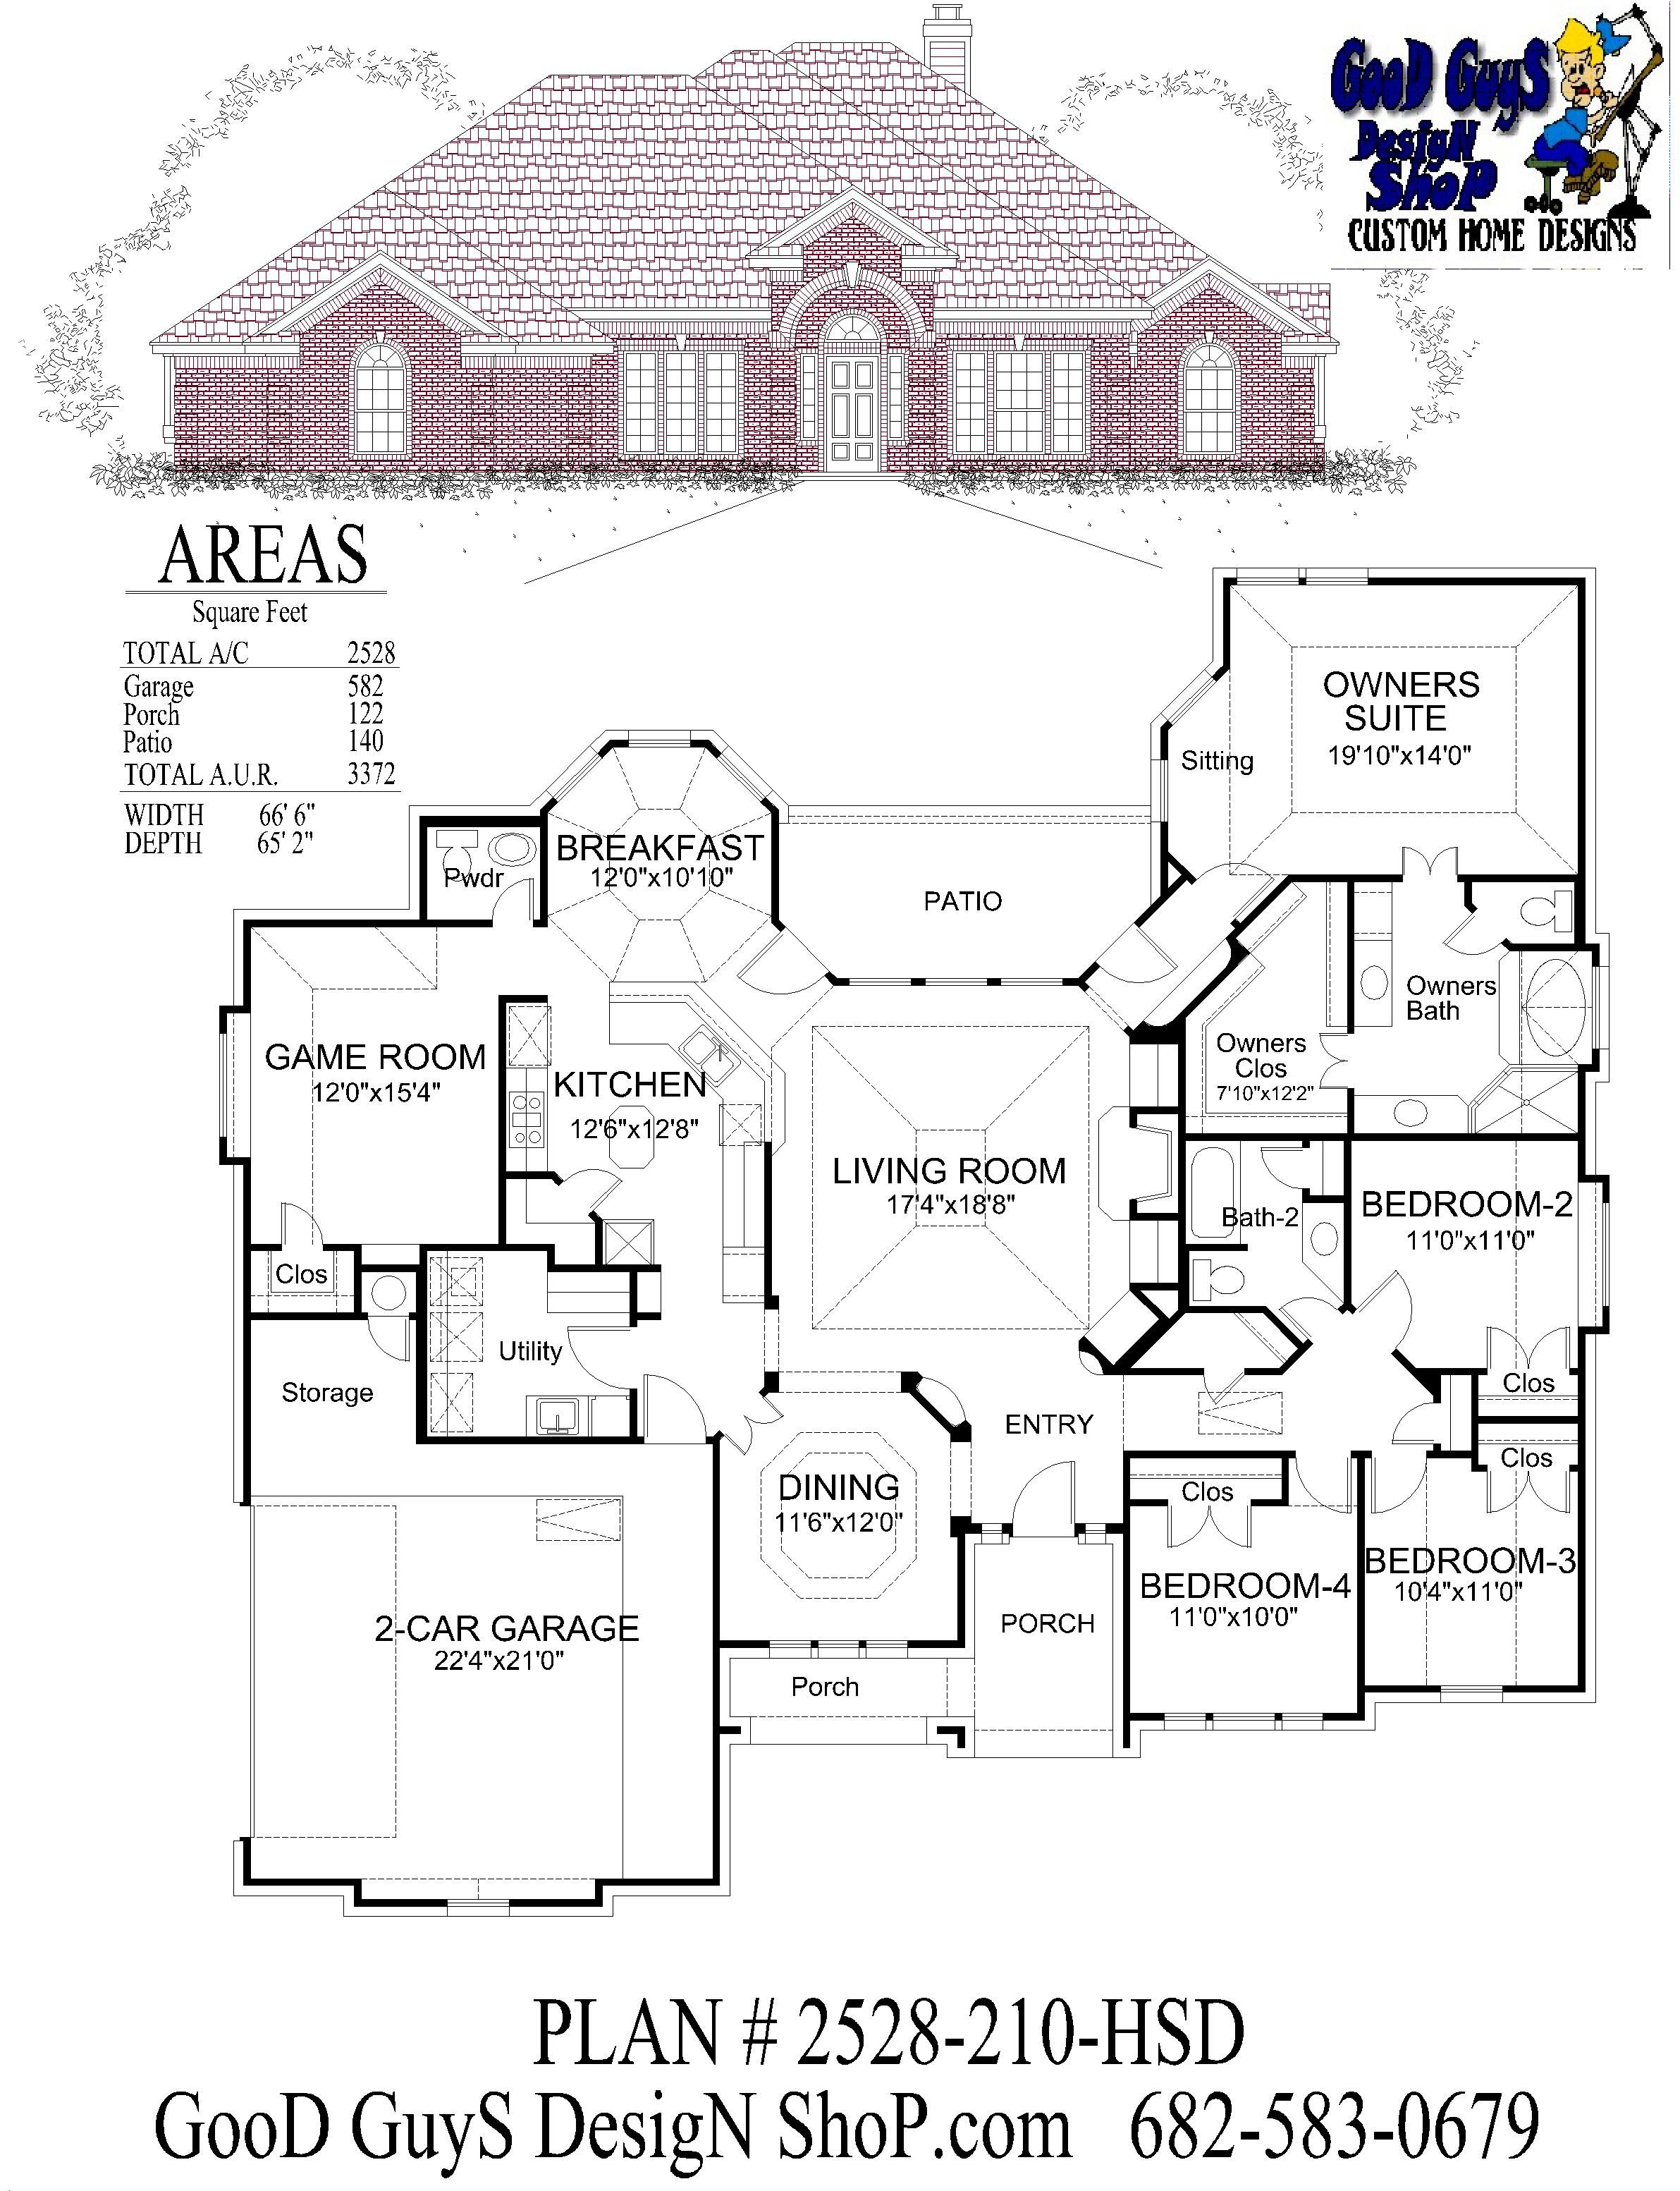 Stock house plans one story plan 2528 sqft 4 bedrooms 2 baths half bath formal dining game room 2 car garage front side entry traditional brick